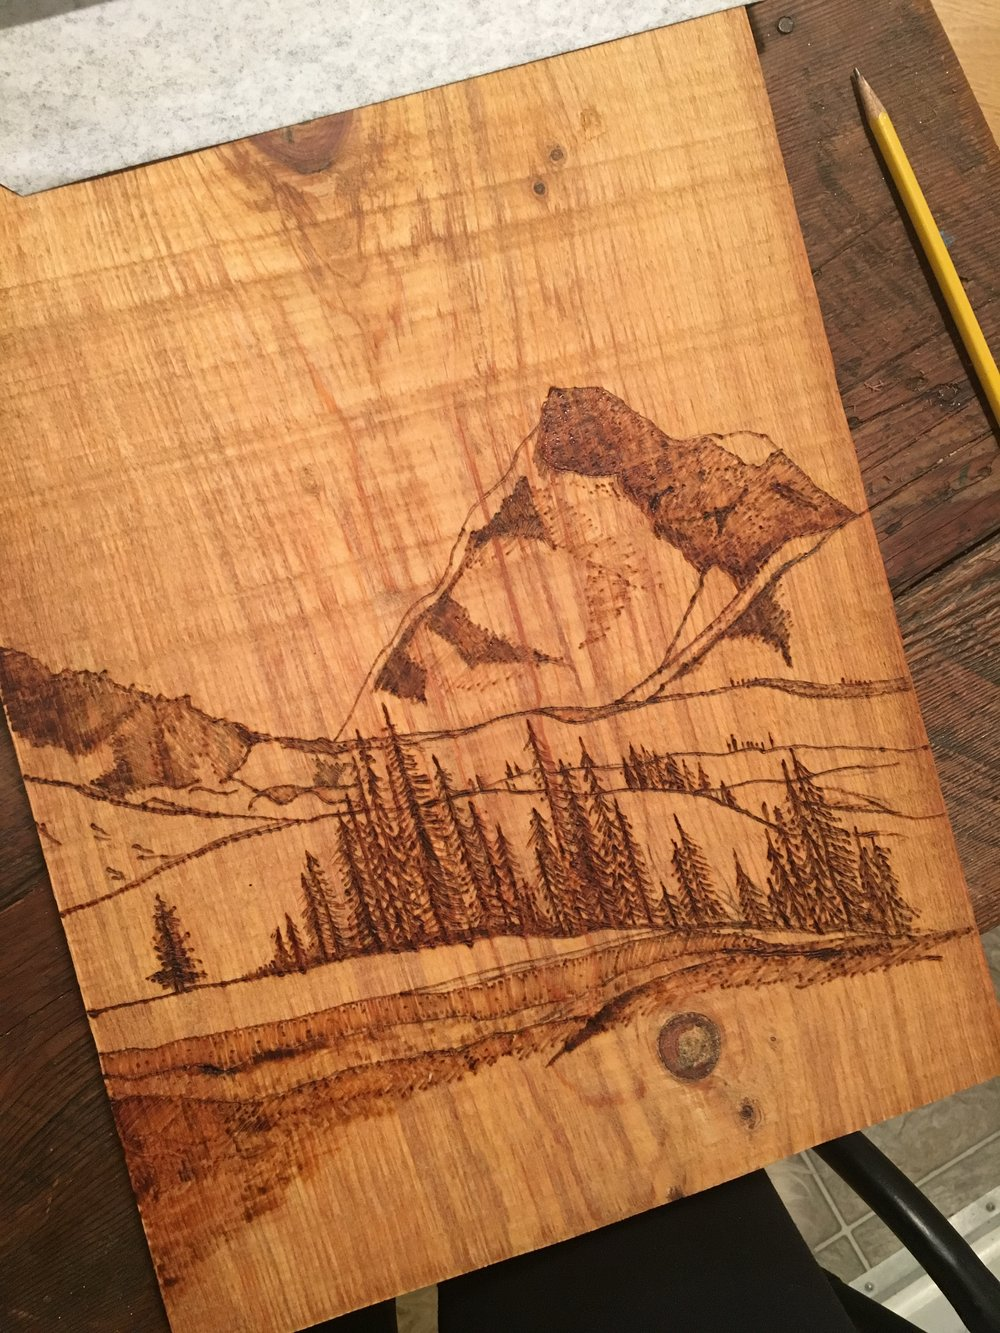 How To Make Woodburning Art